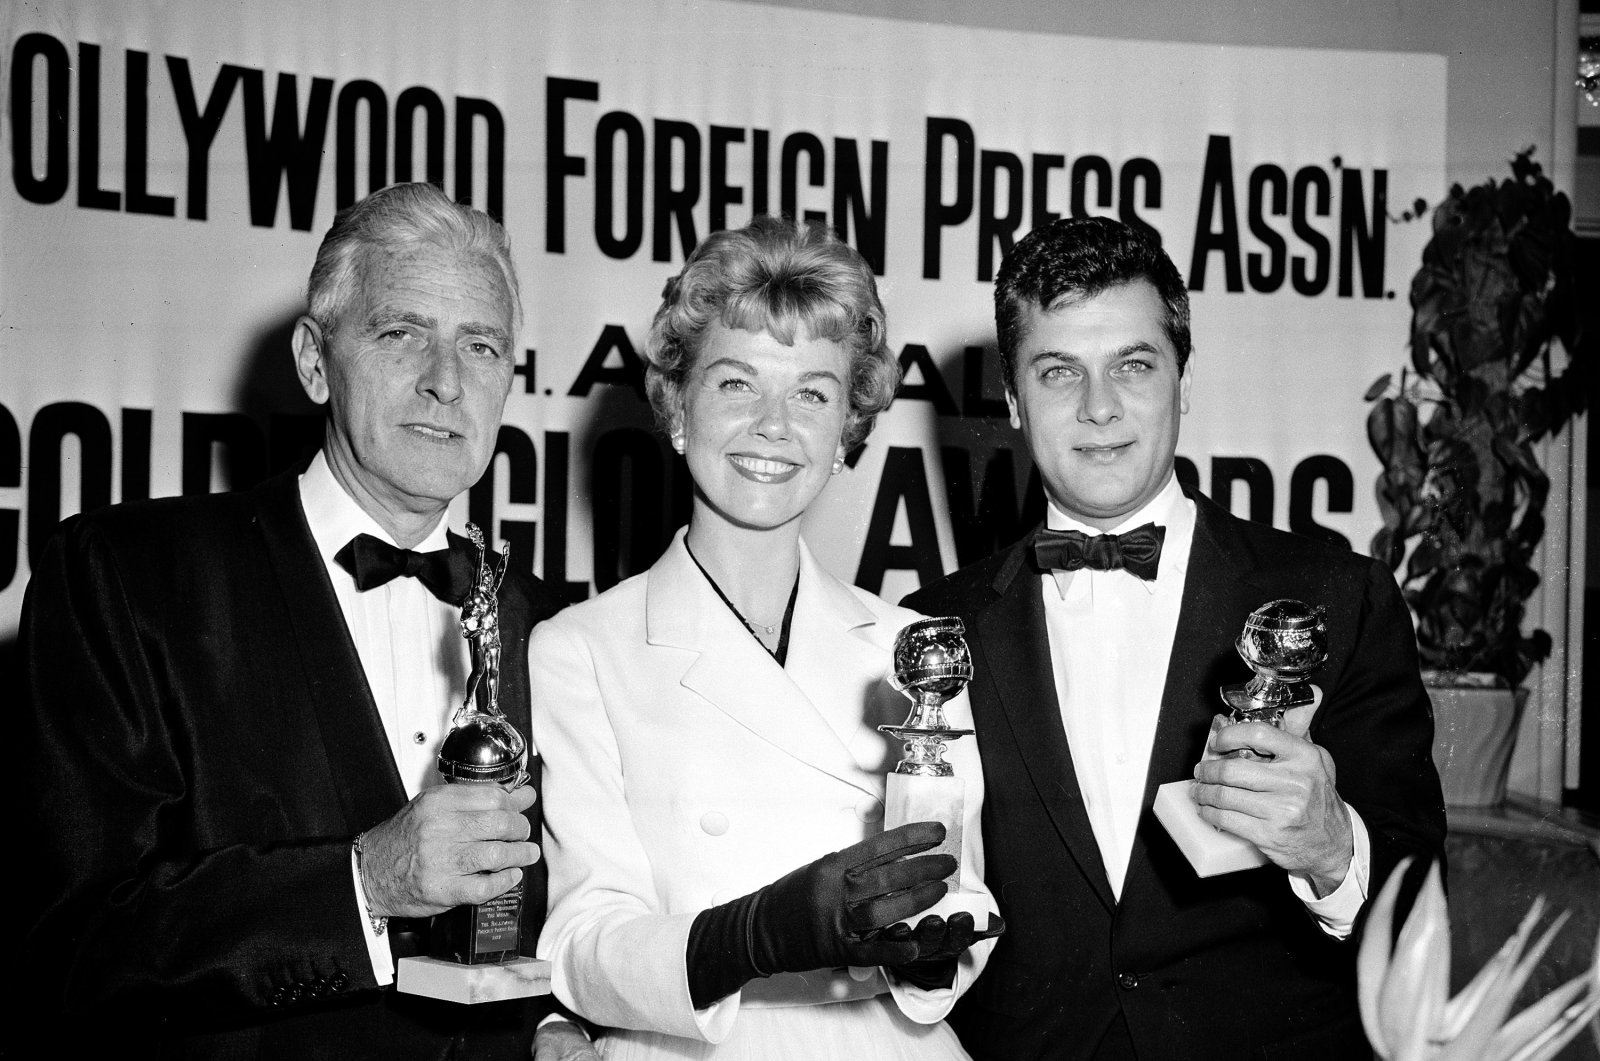 In this Feb. 26, 1958 file photo, actress Doris Day, center, Tony Curtis, right, and Buddy Adler pose with their awards presented to them by the Hollywood Foreign Press Association at its annual awards dinner in the Cocoanut Grove in Los Angeles. (AP Photo)